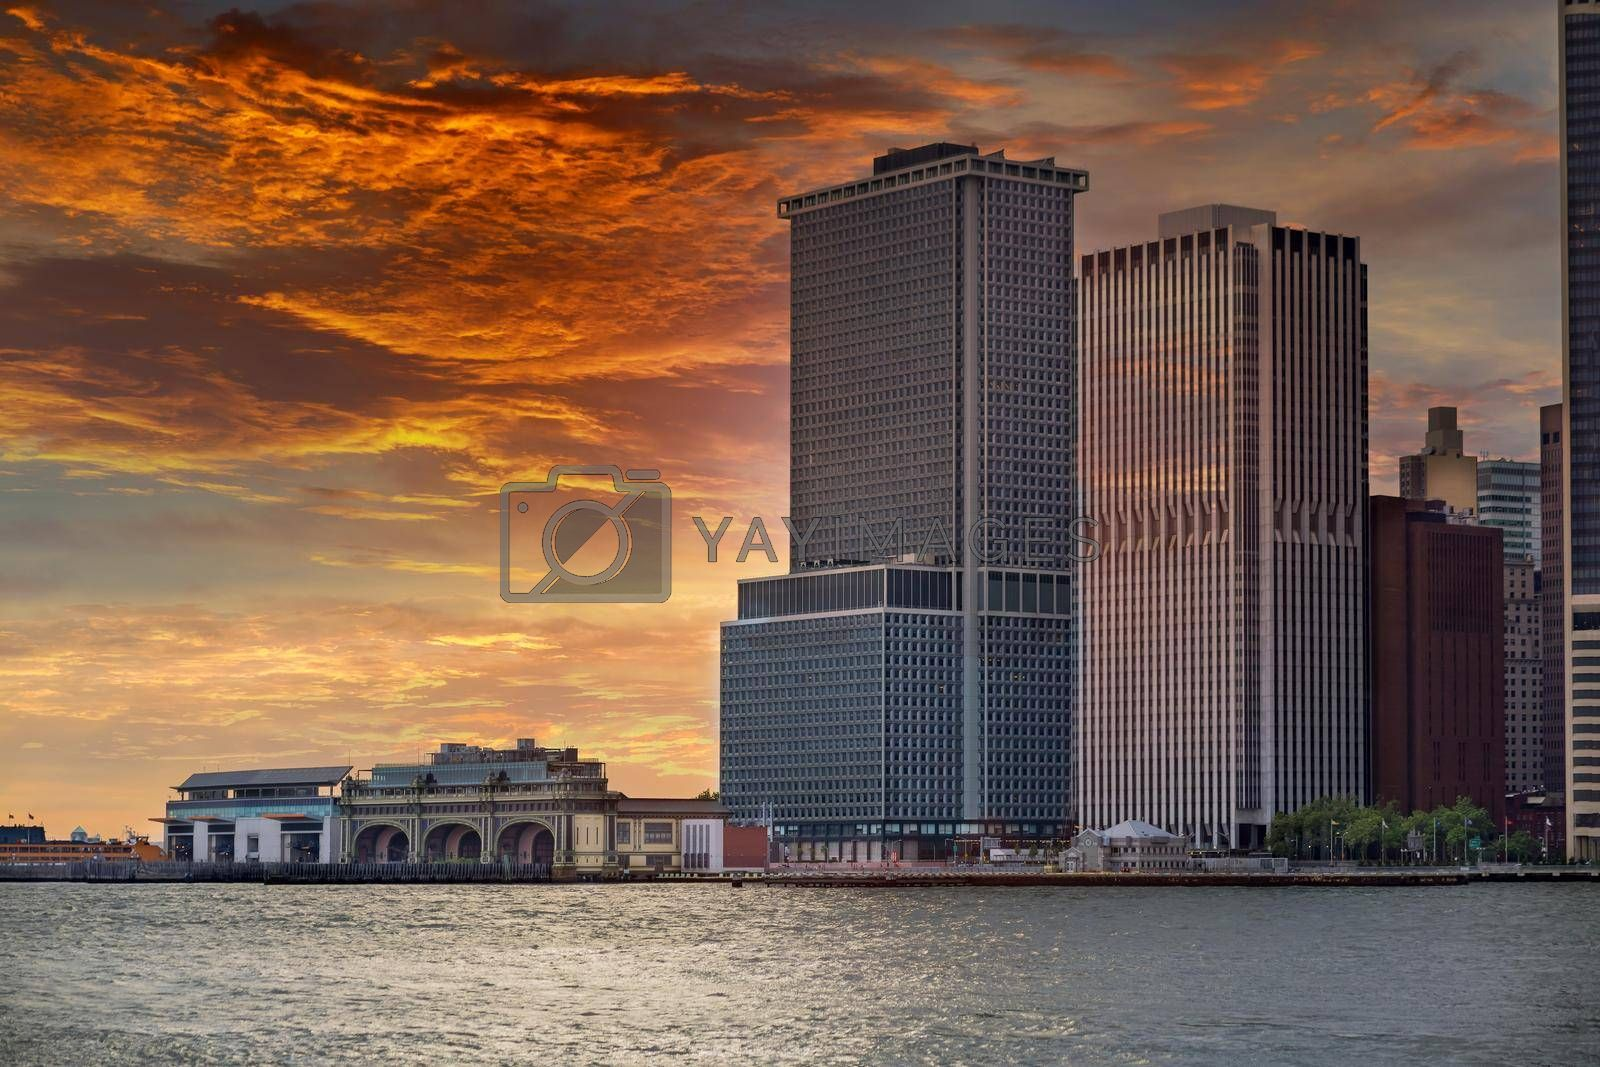 Whitehall Ferry Terminal Docks on the way from Staten Island NY NJ USA in sunset view